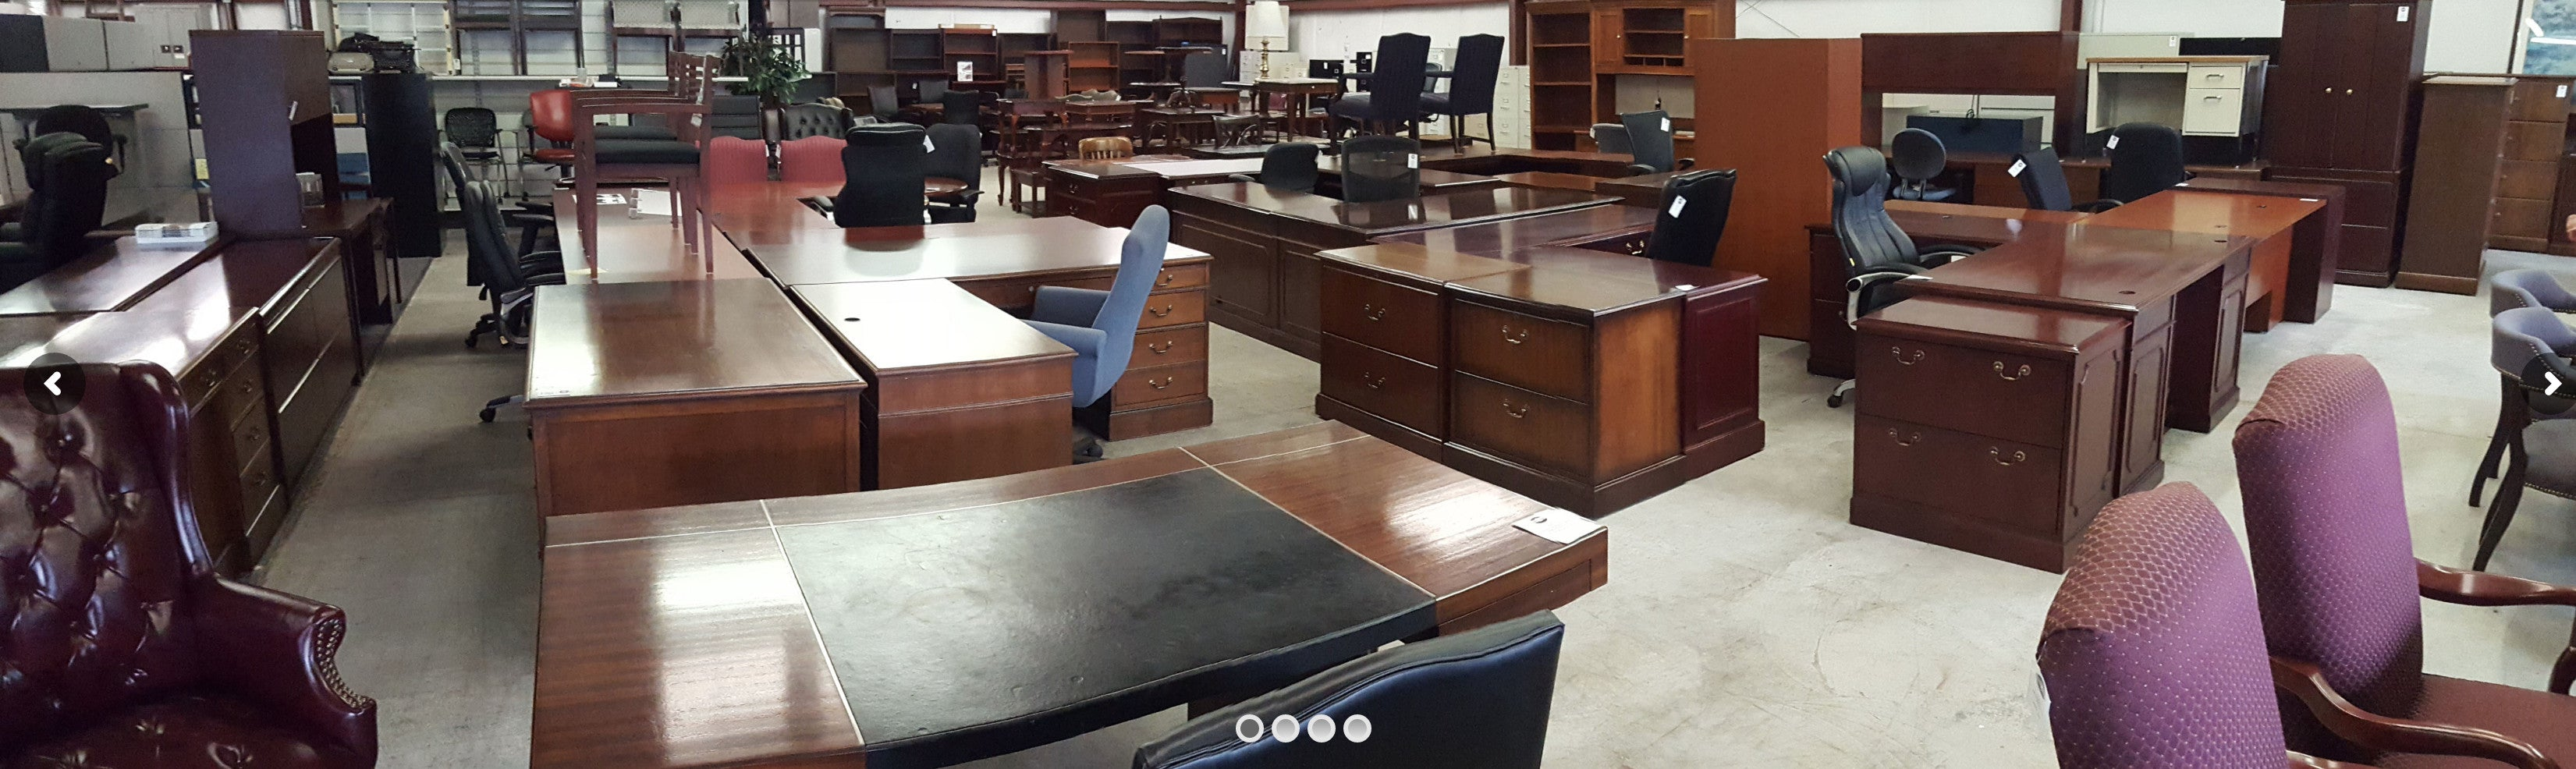 wilcox office mart new and used office furniture florence sc. Black Bedroom Furniture Sets. Home Design Ideas